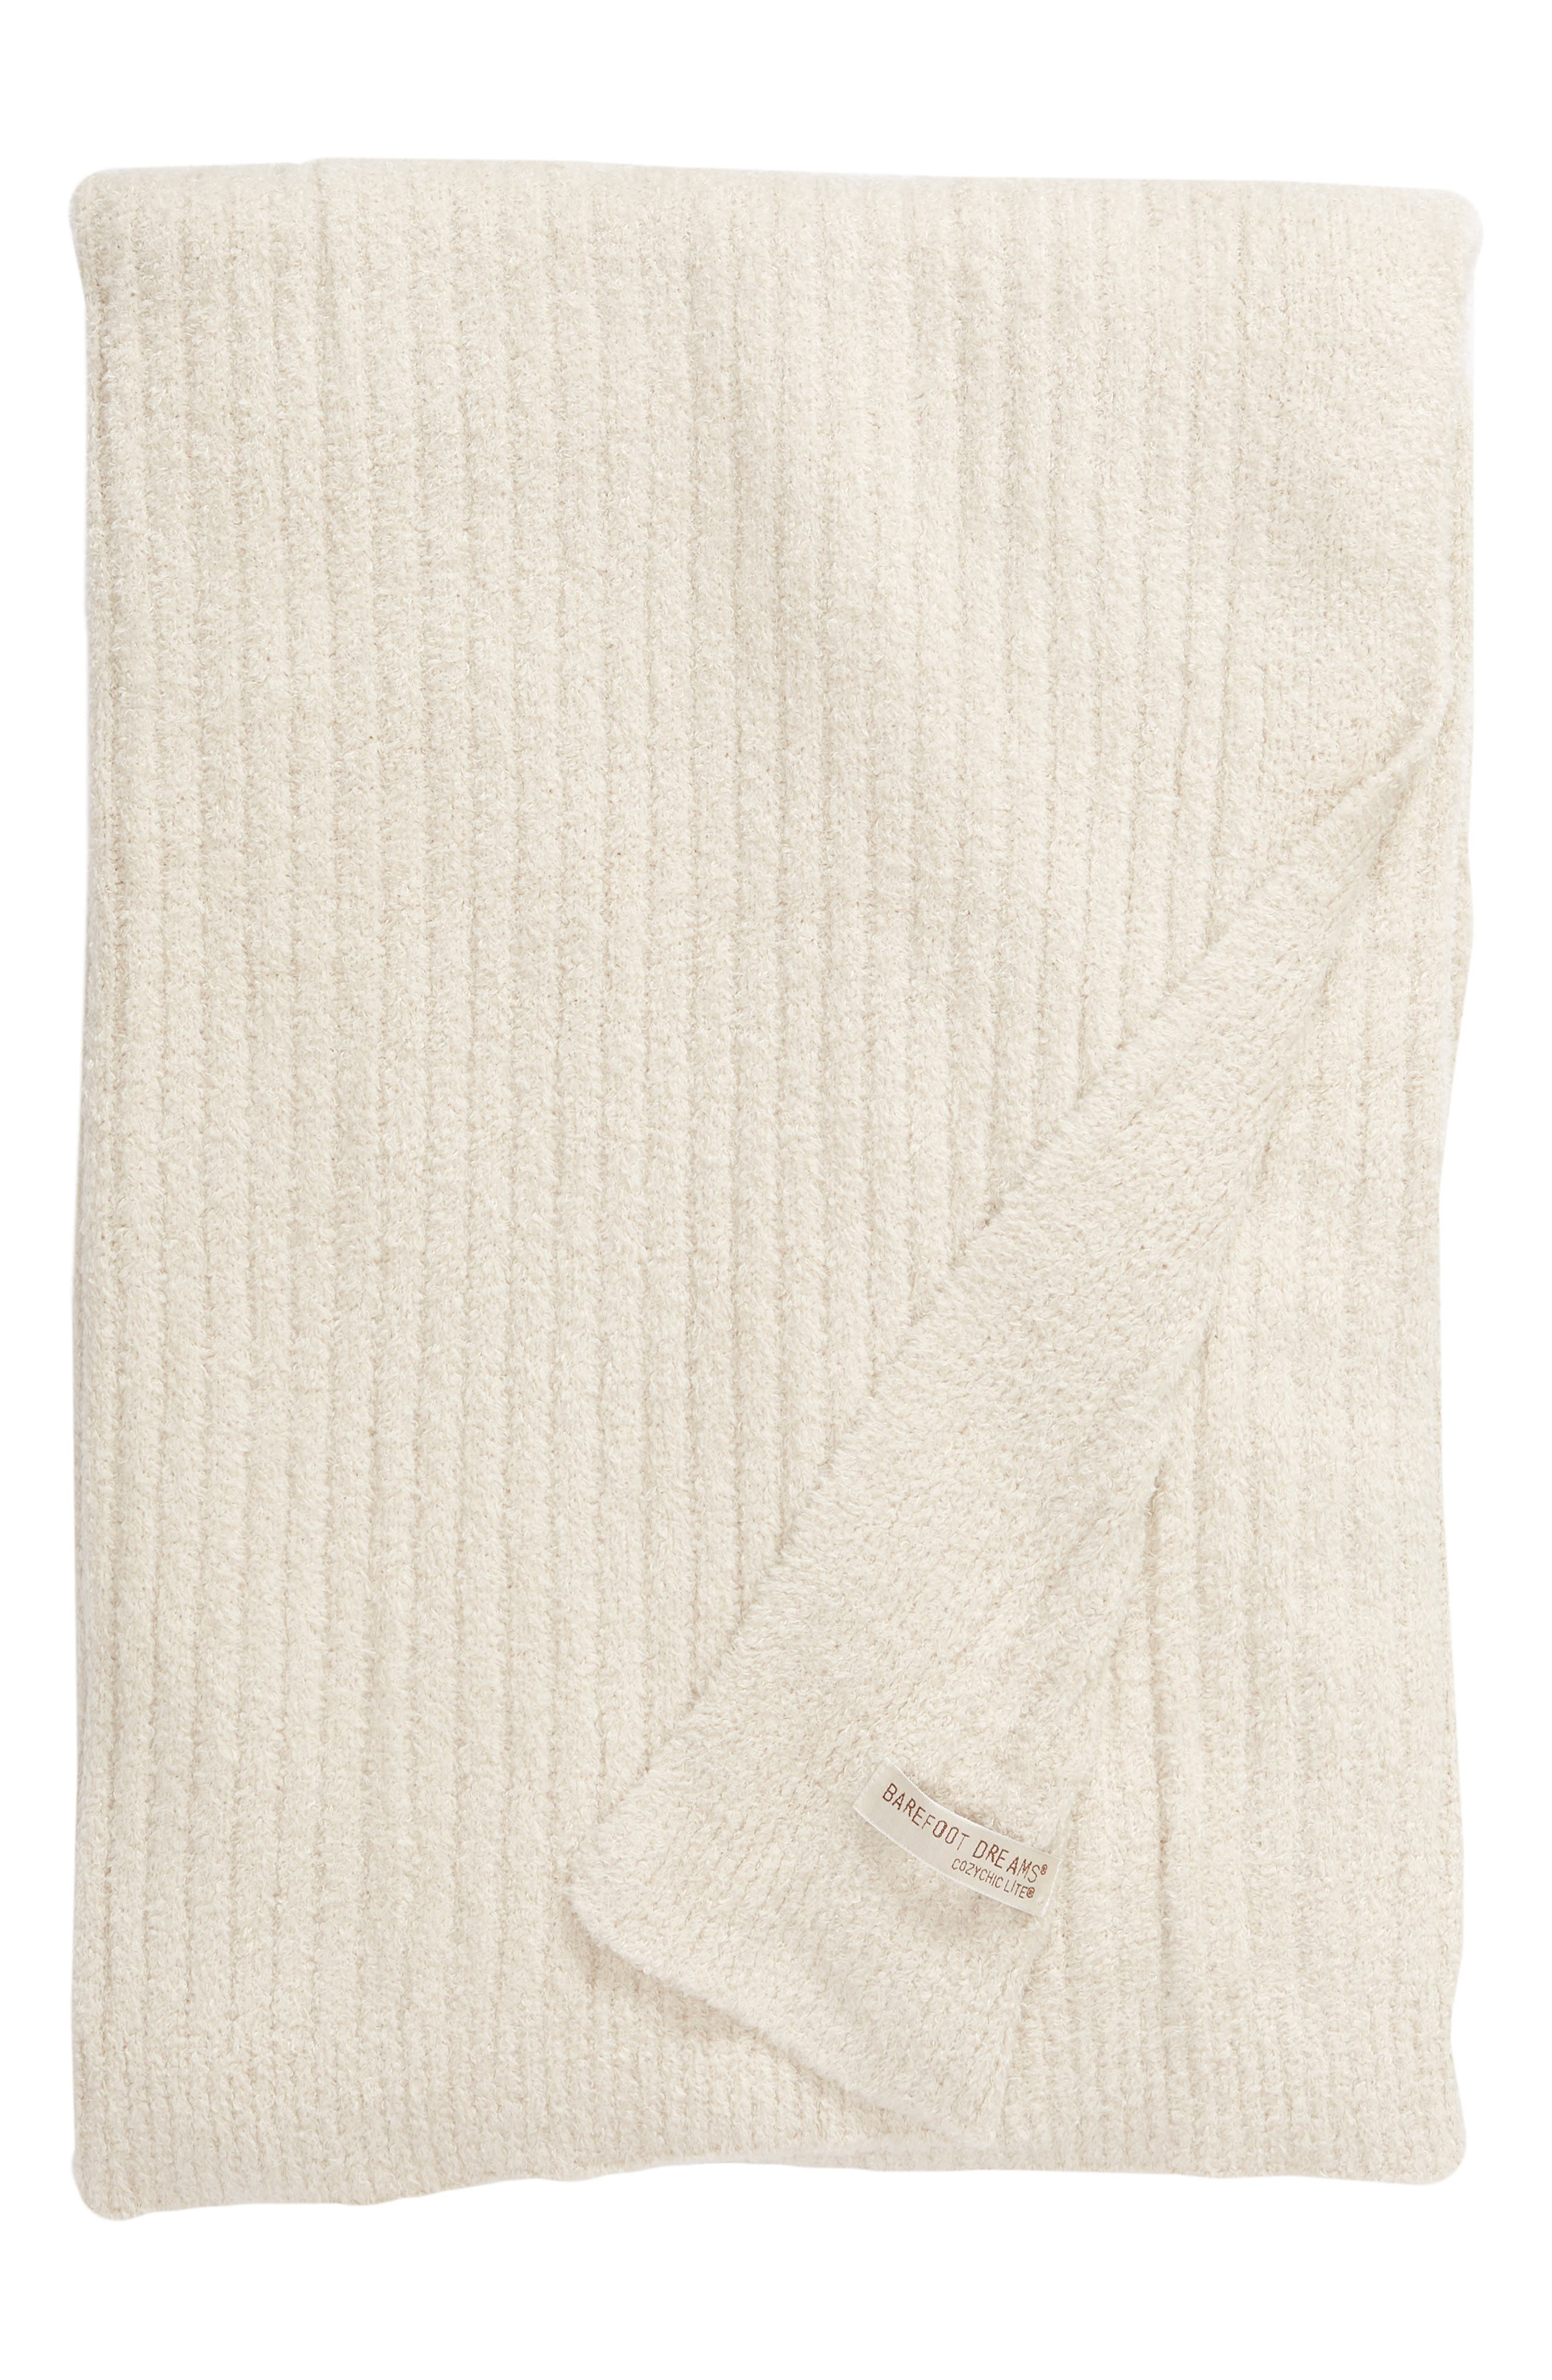 Cozychic<sup>®</sup> Ribbed Throw Blanket,                             Main thumbnail 1, color,                             BISQUE